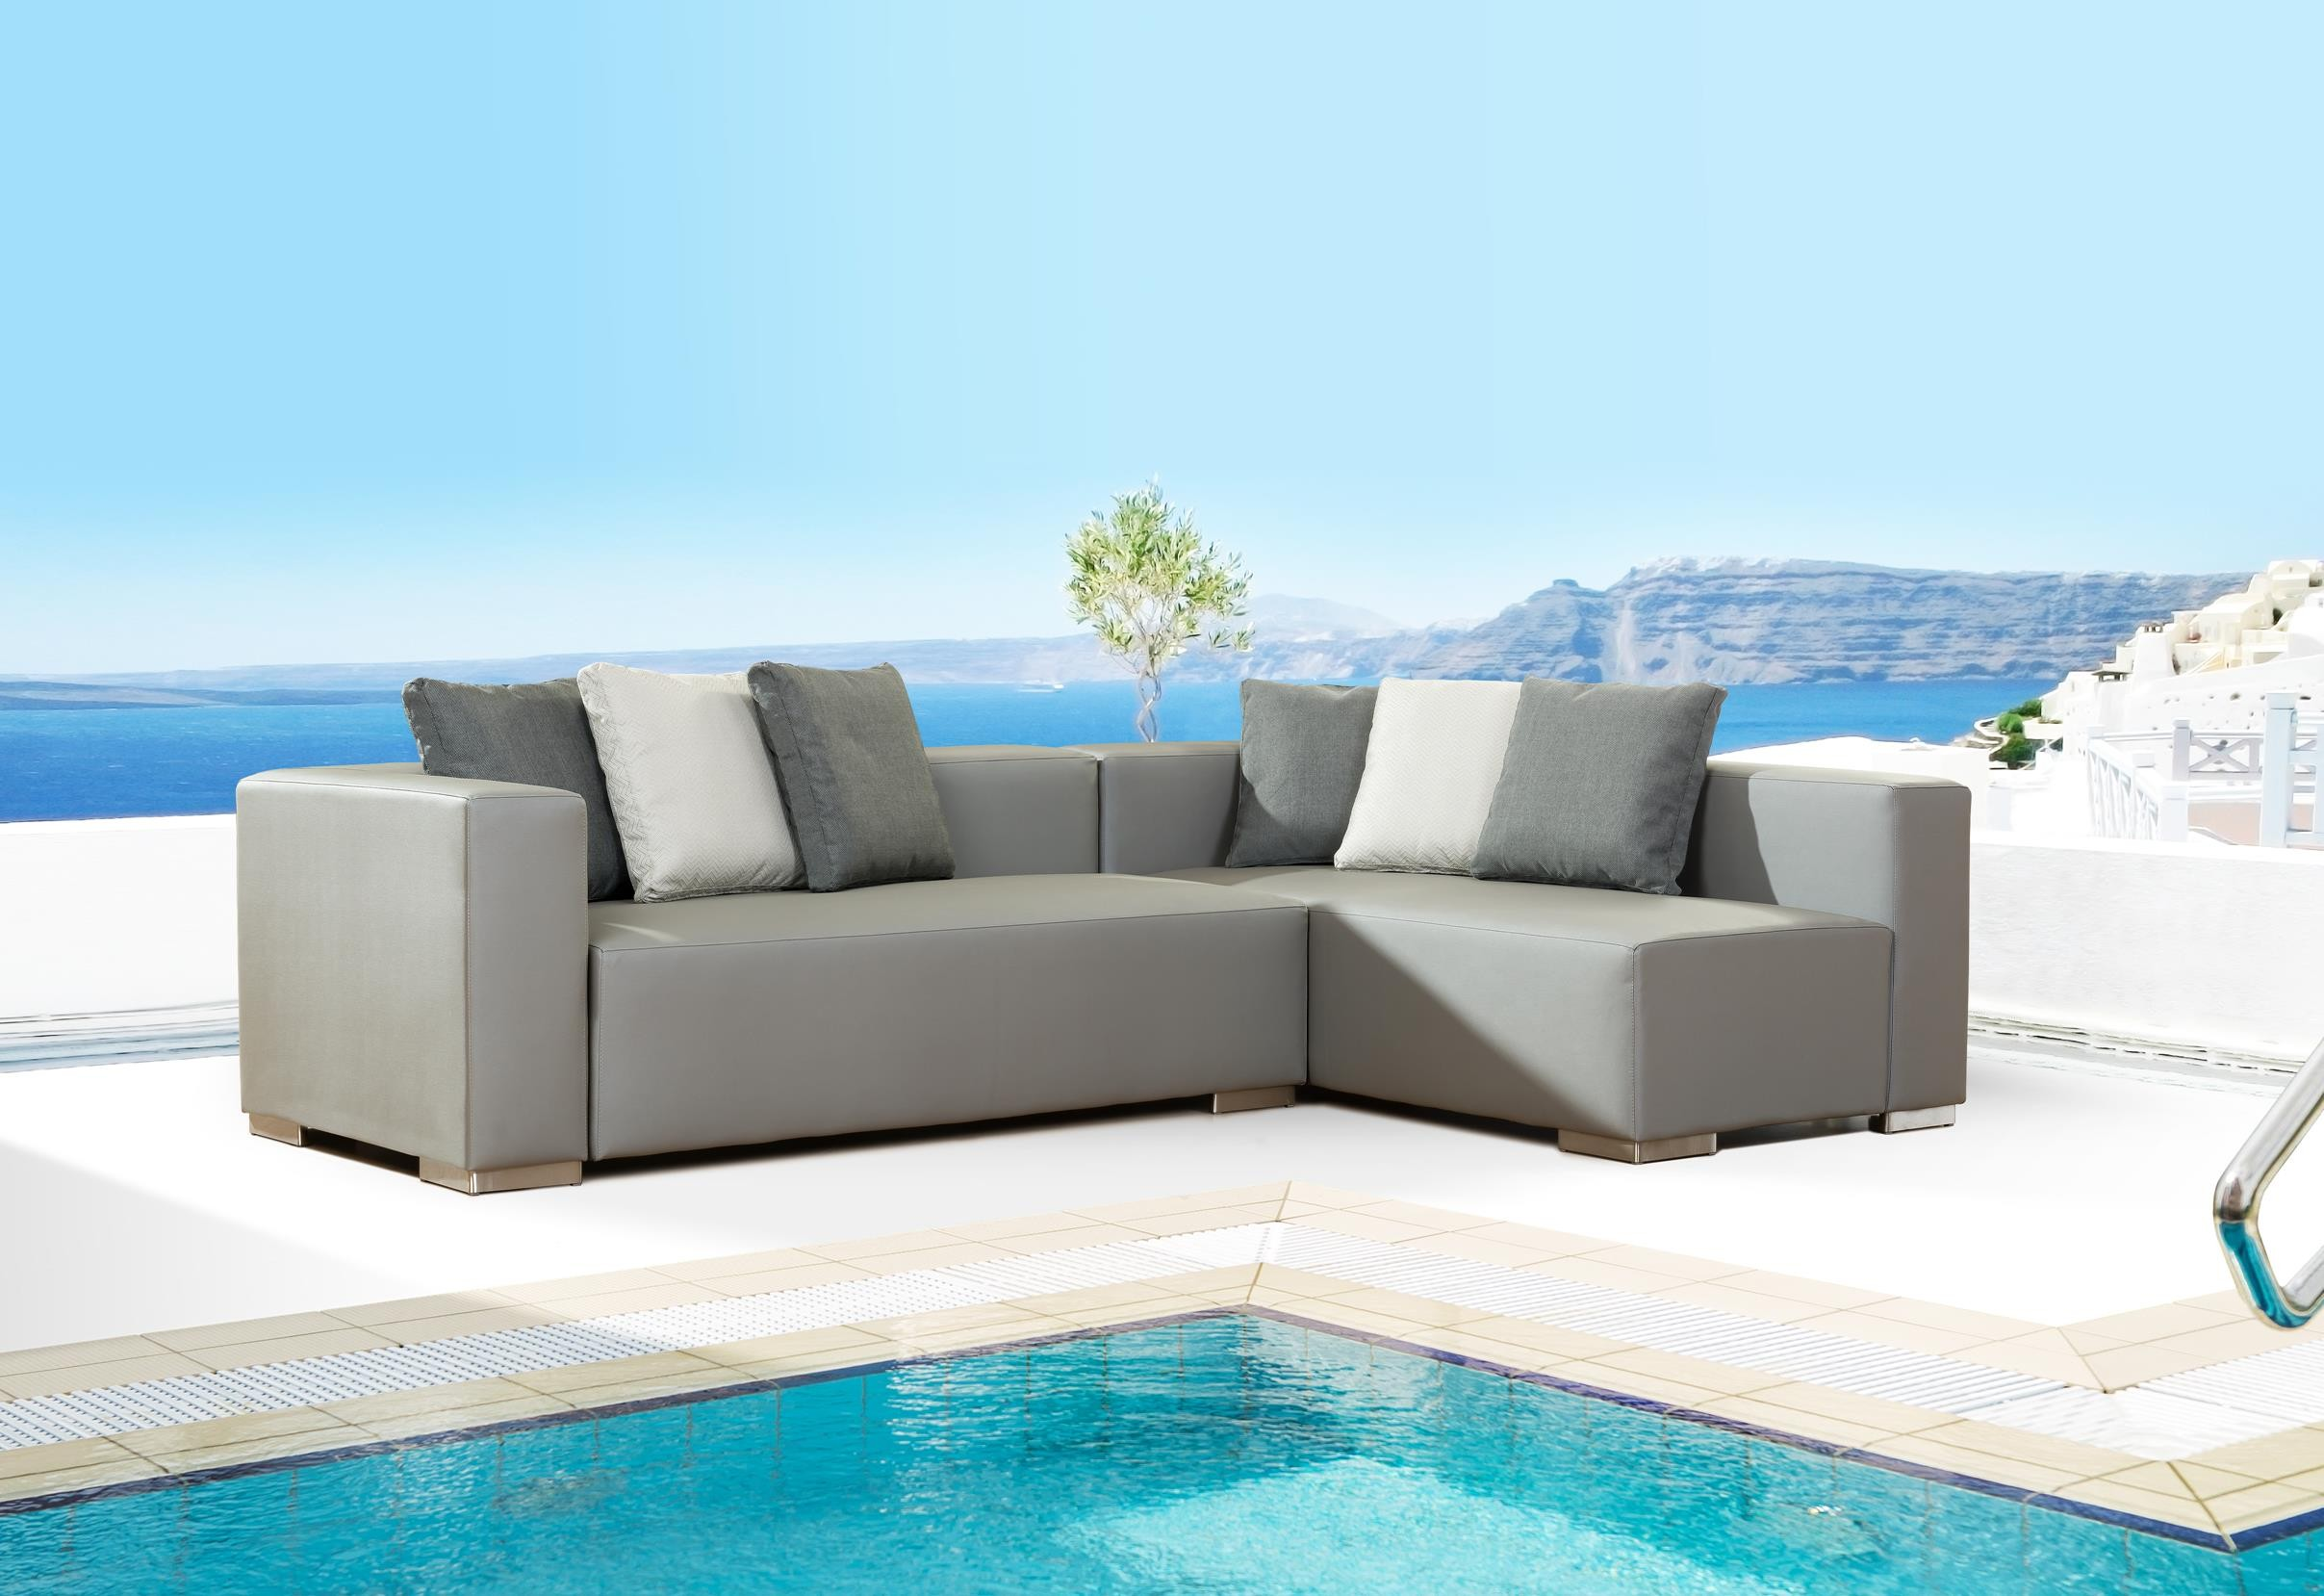 outdoor garten ecksofa gro e bezugsauswahl bei garten sofas g nstig. Black Bedroom Furniture Sets. Home Design Ideas